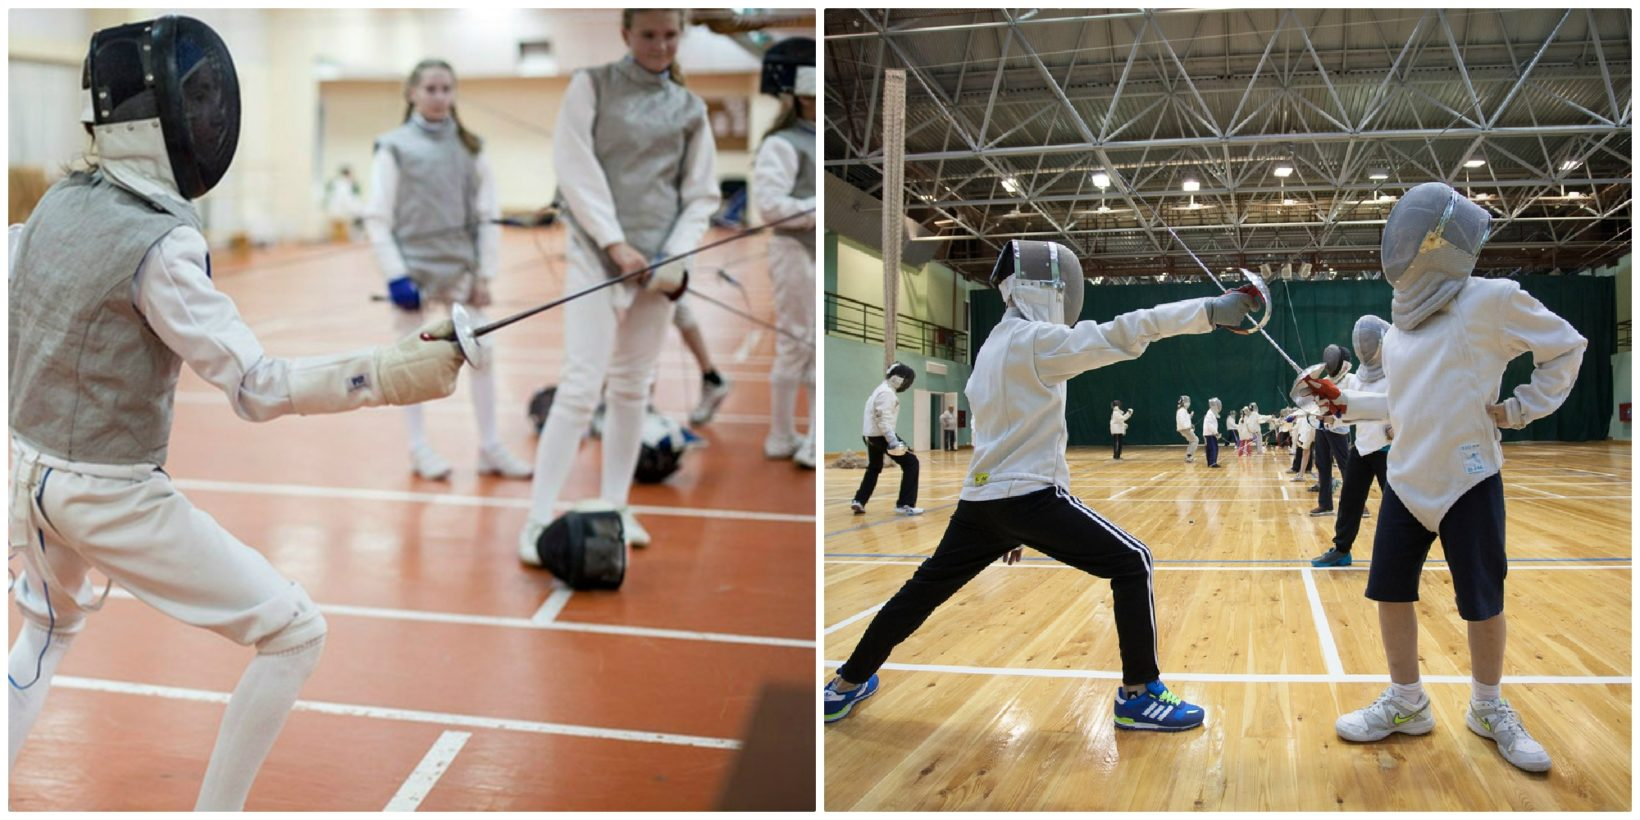 Fencing in minsk